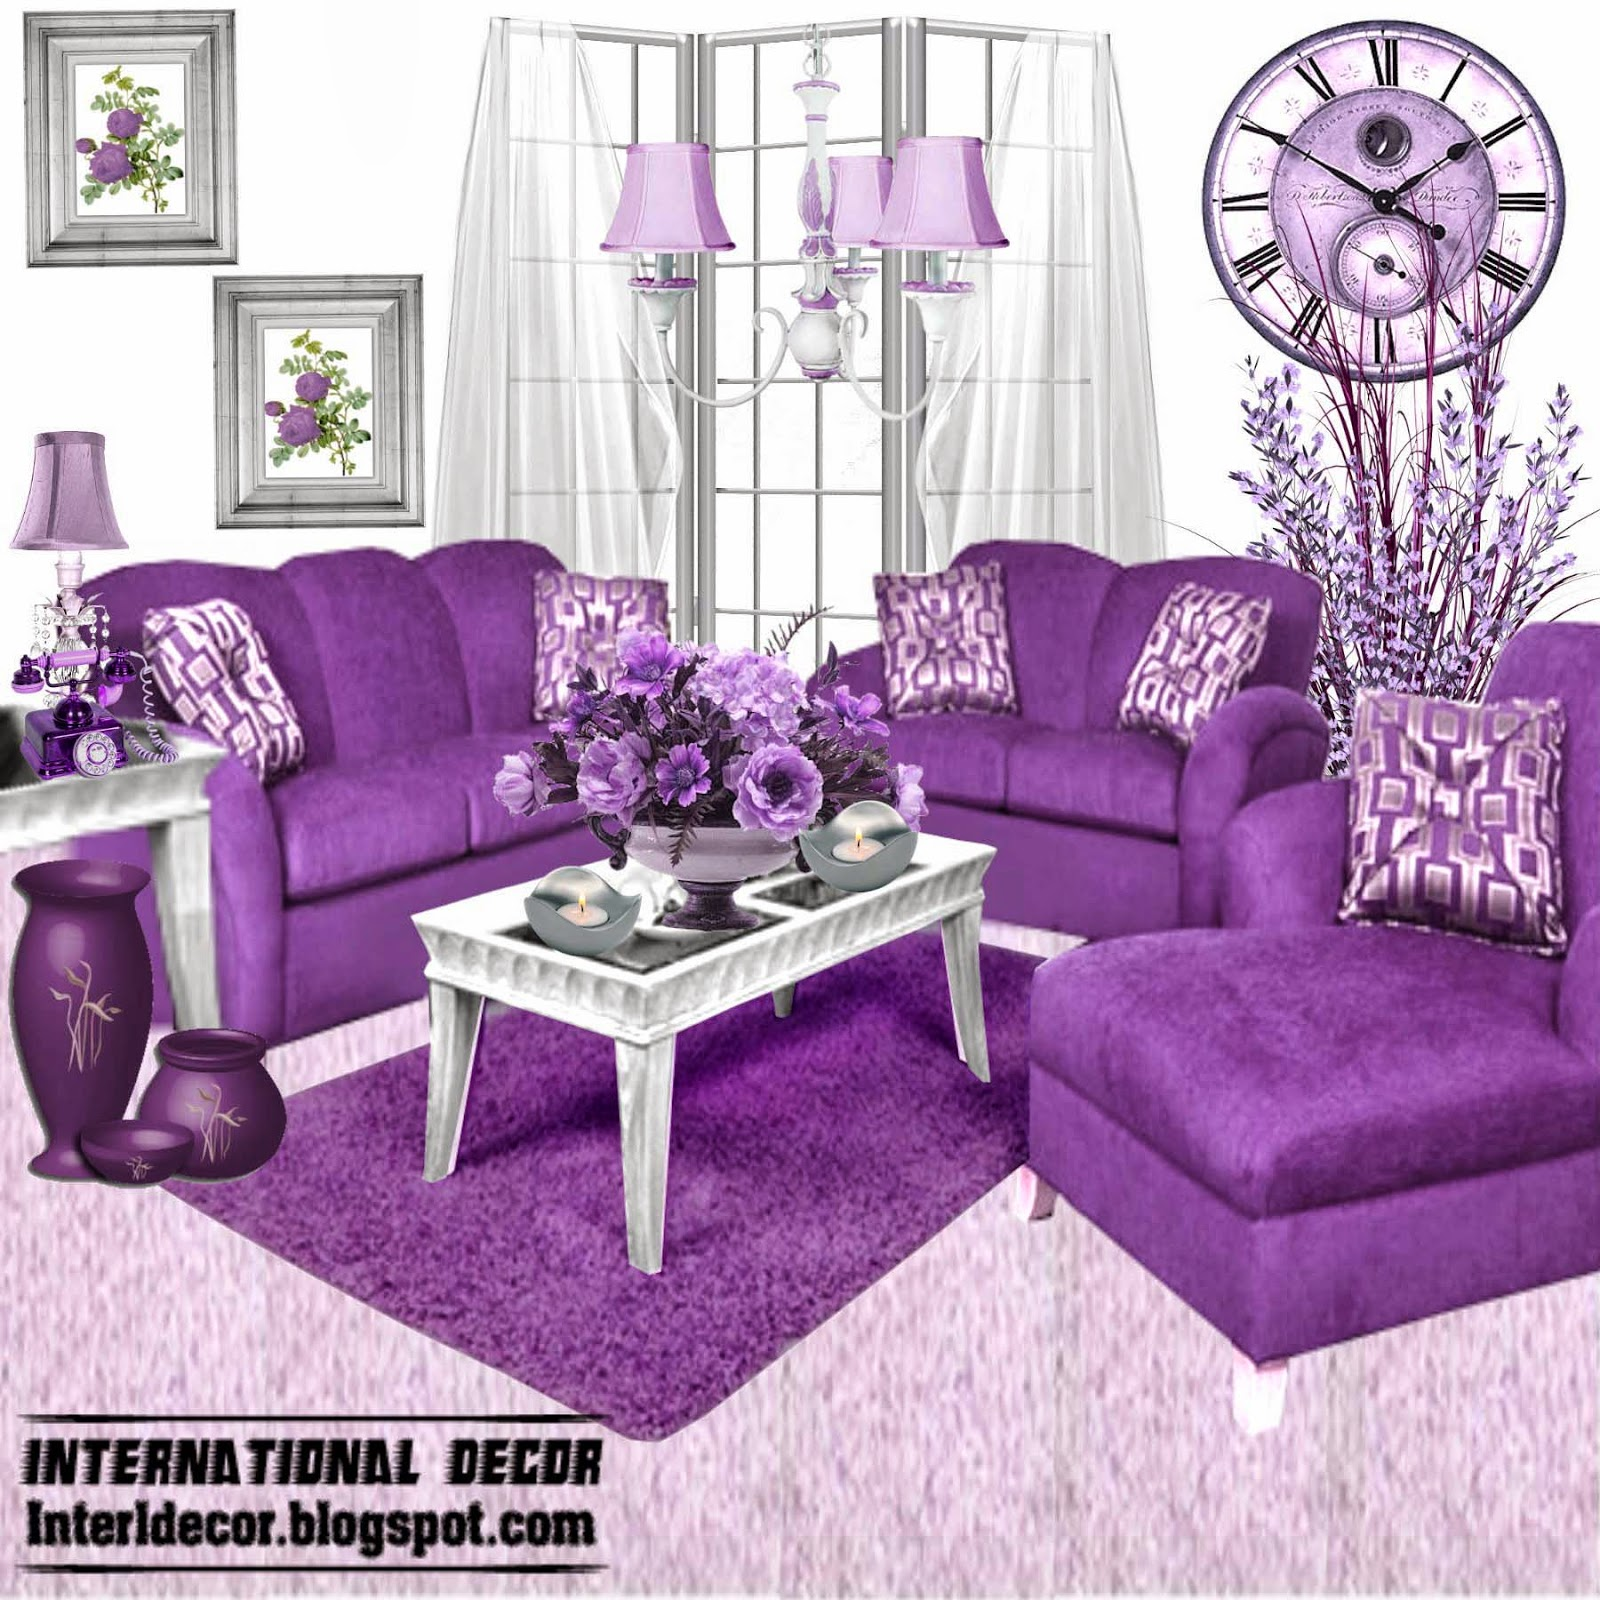 Purple furniture for the home pinterest purple for Lounge room furniture